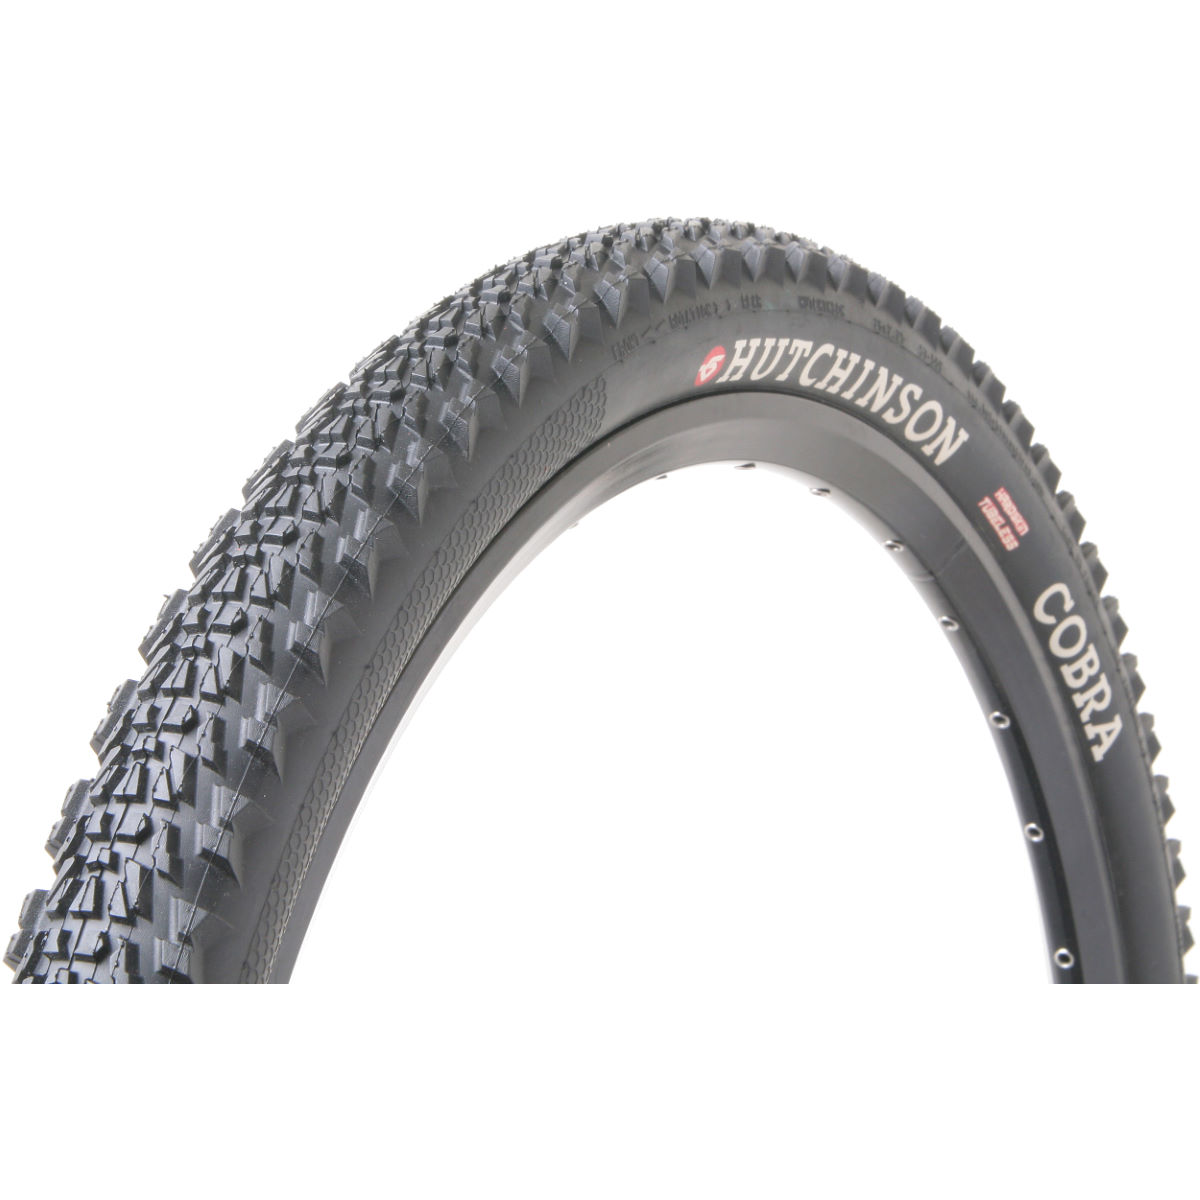 Pneu VTT Hutchinson Cobra (tubeless ready, souple) - 26 x 2.1 Noir